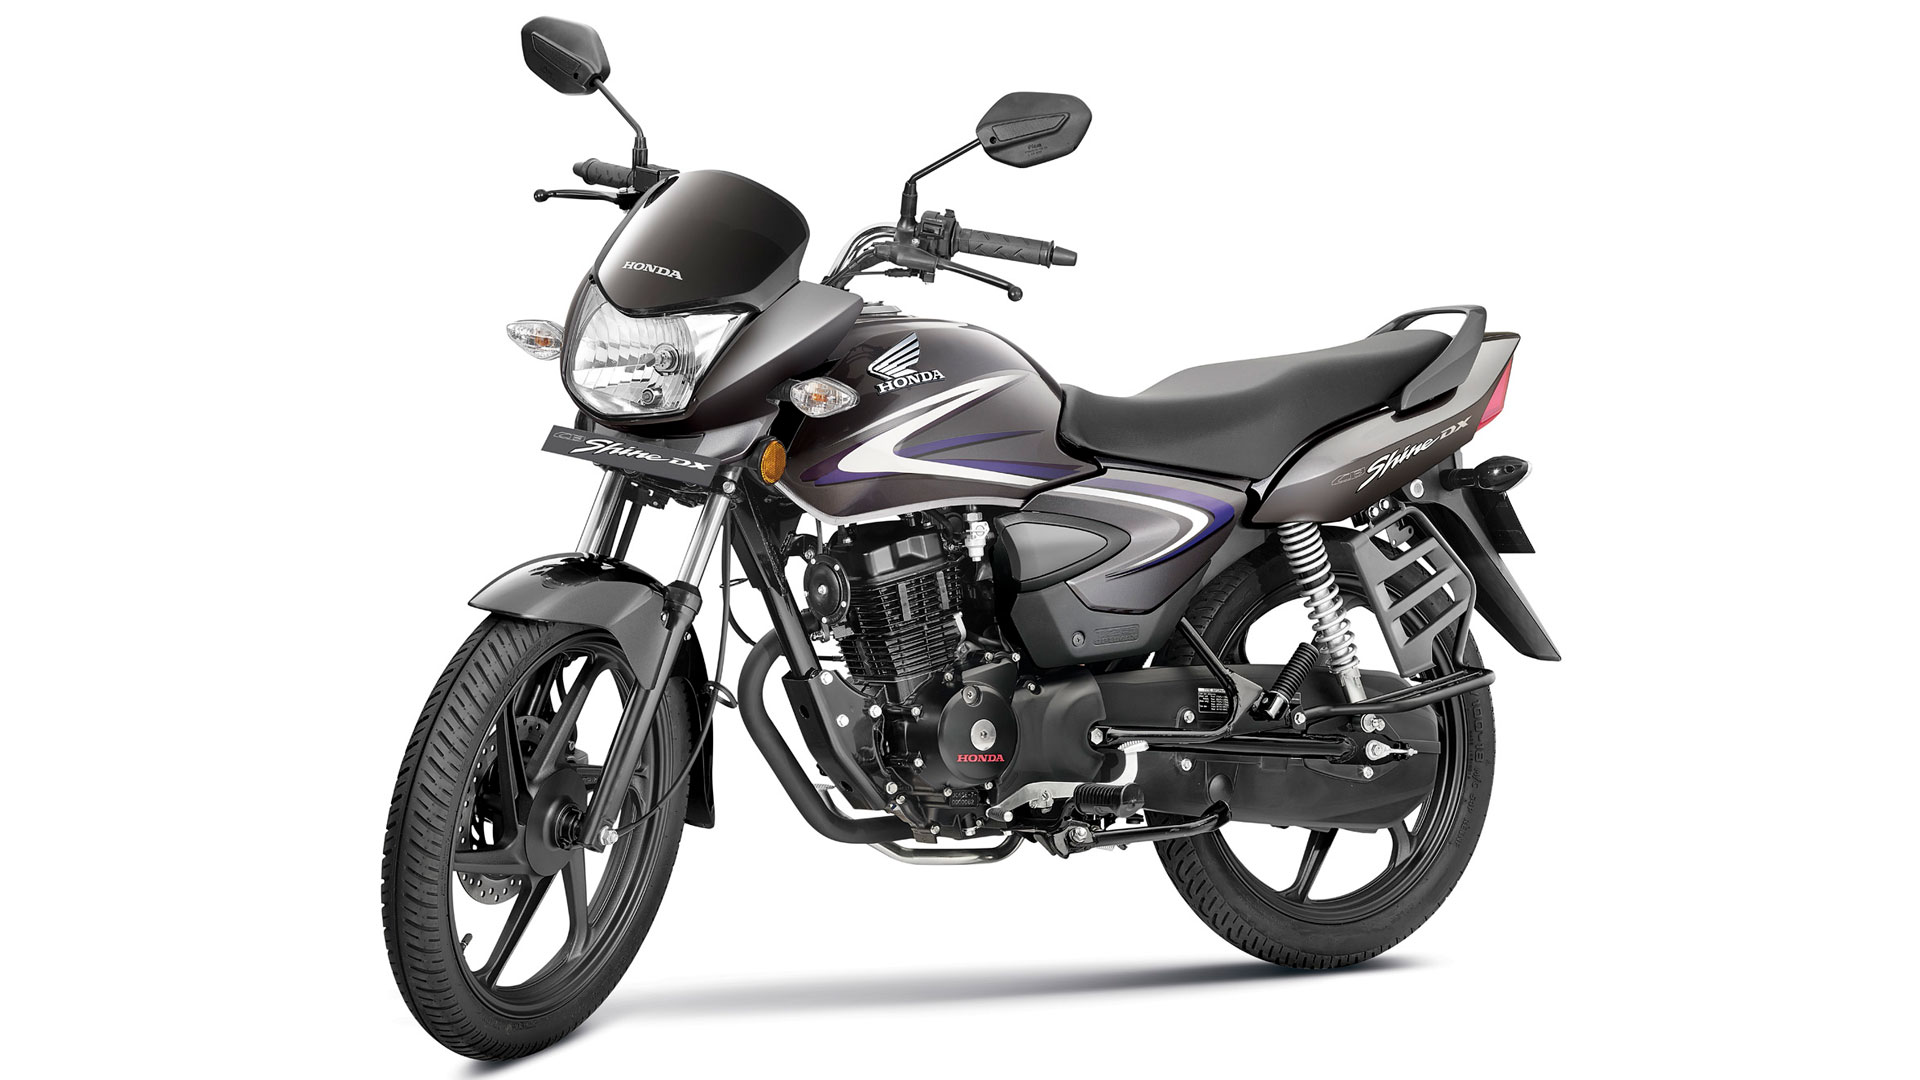 Honda CB Shine 2017 - Price, Mileage, Reviews ...